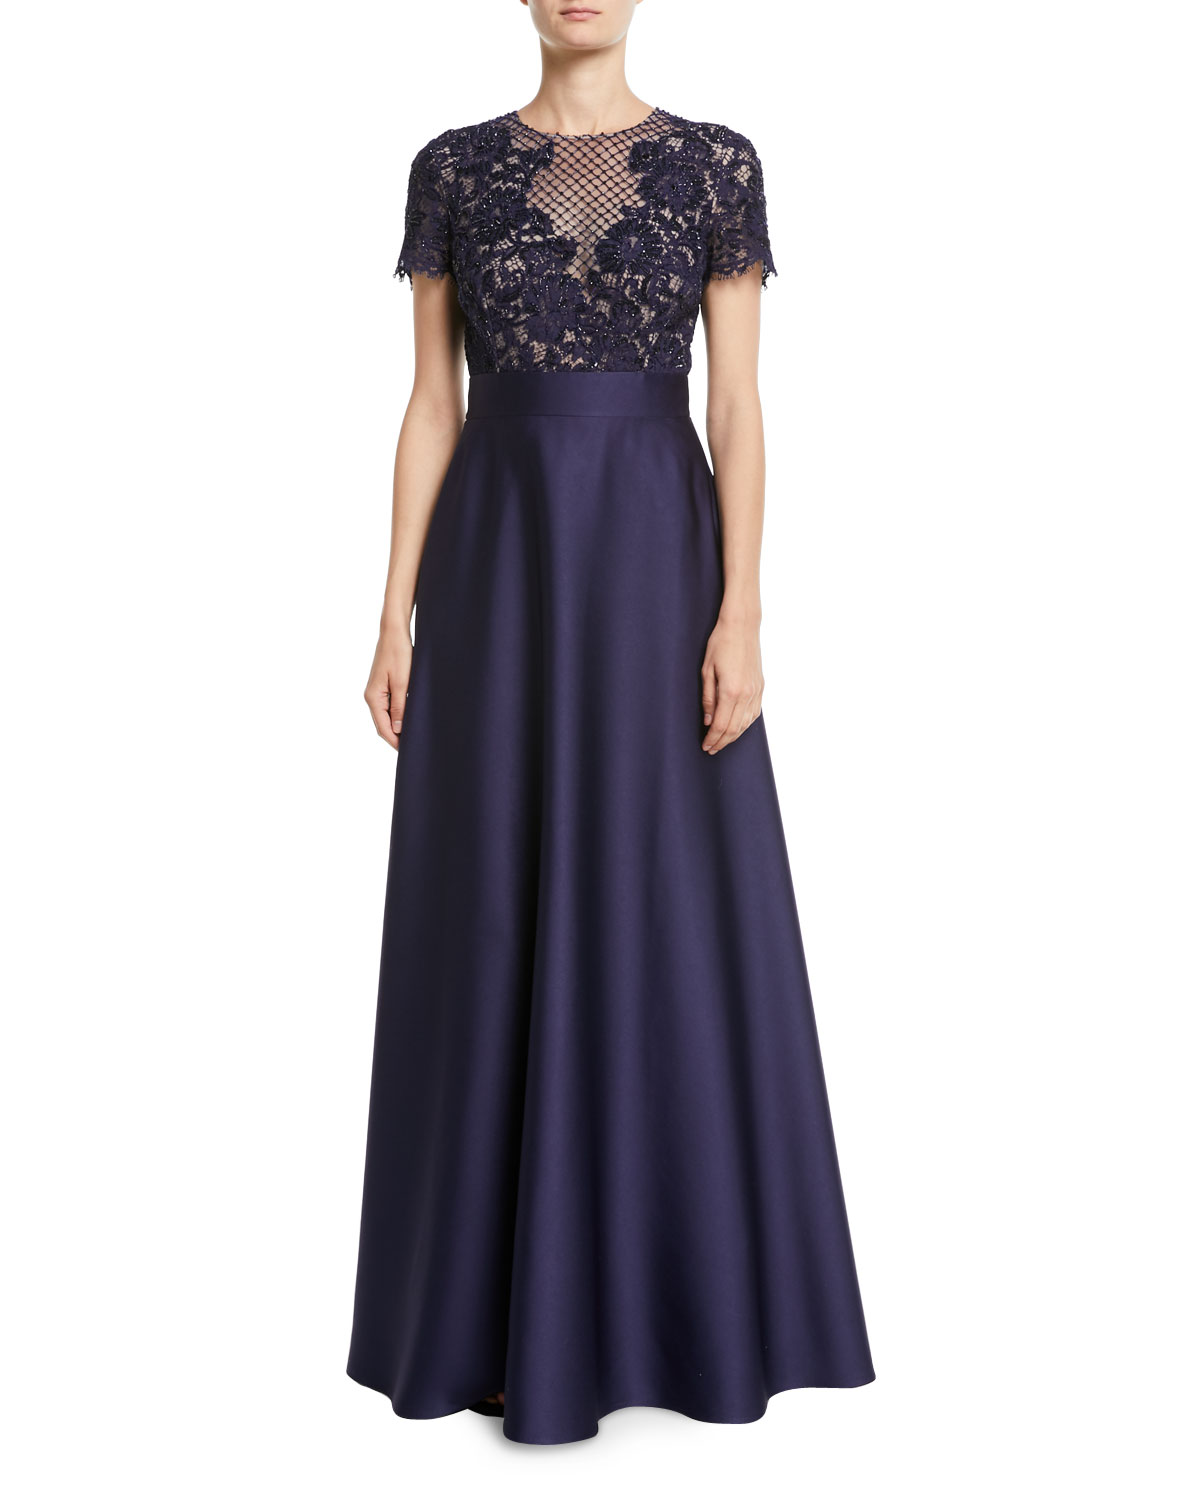 Escada Floral-Lace Bodice Full Satin Skirt Evening Gown | Neiman Marcus